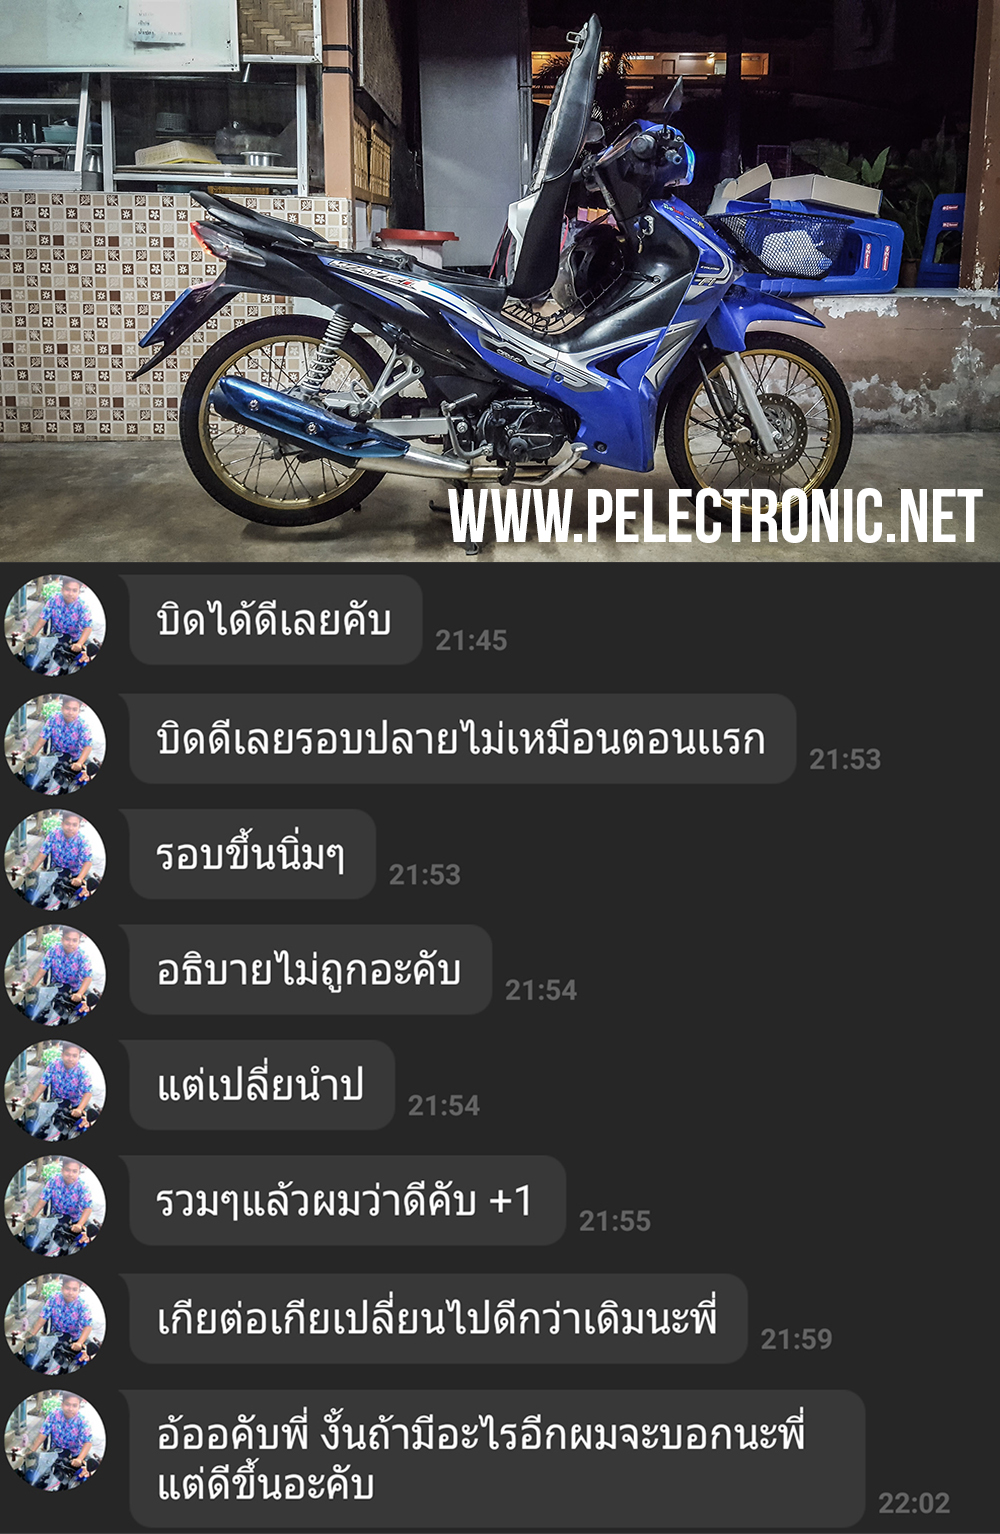 กรองไฟ P Electronic Honda Wave 110i 5-1